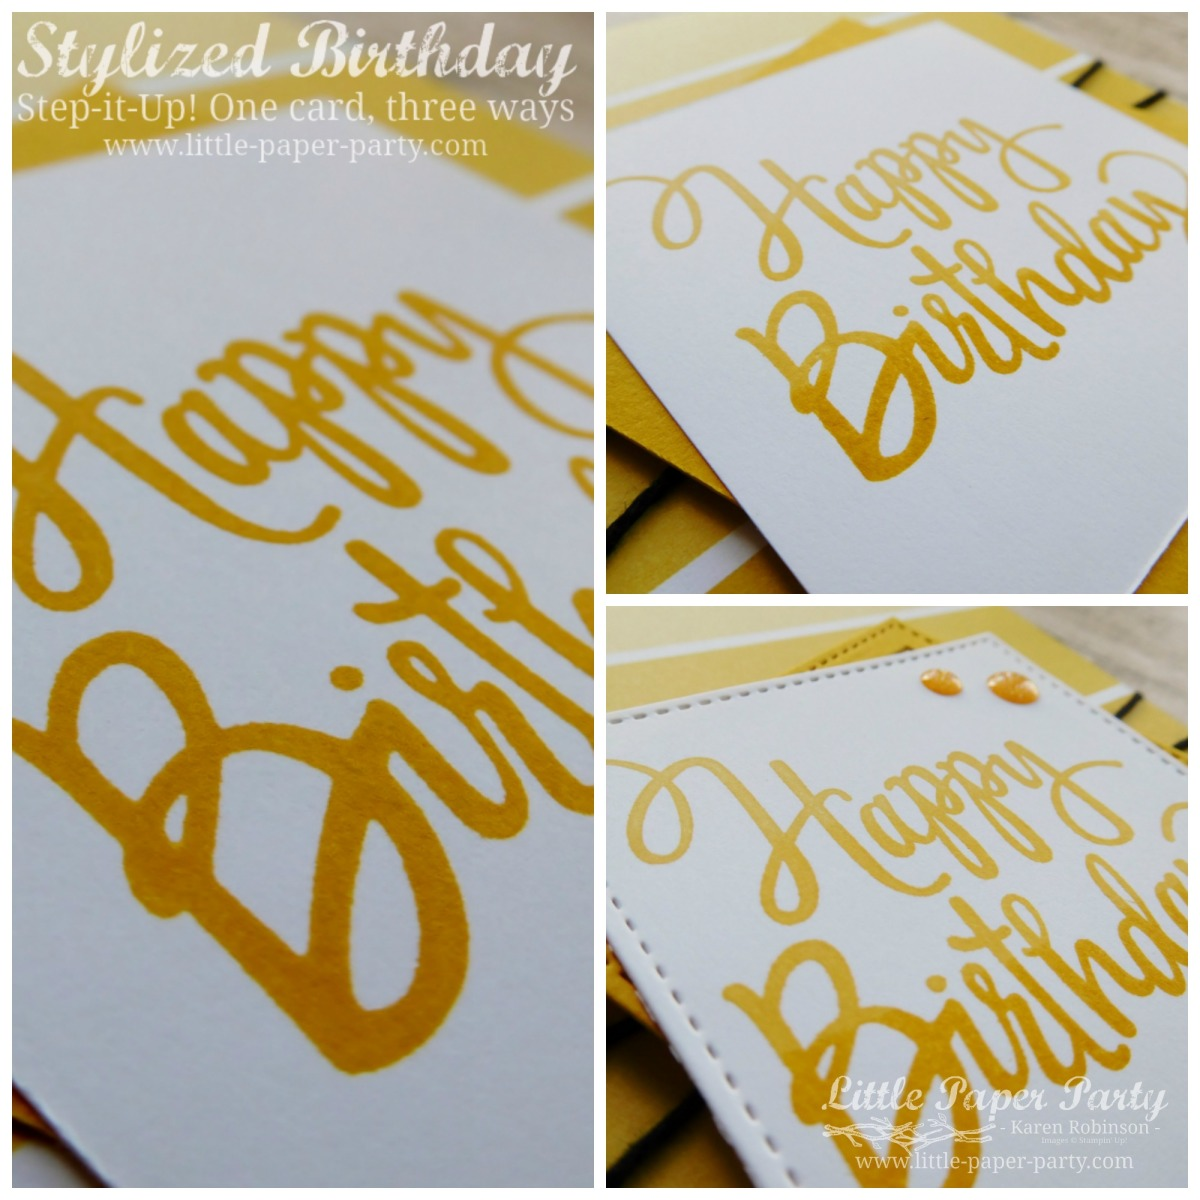 Stylized Birthday... Step-it-Up!